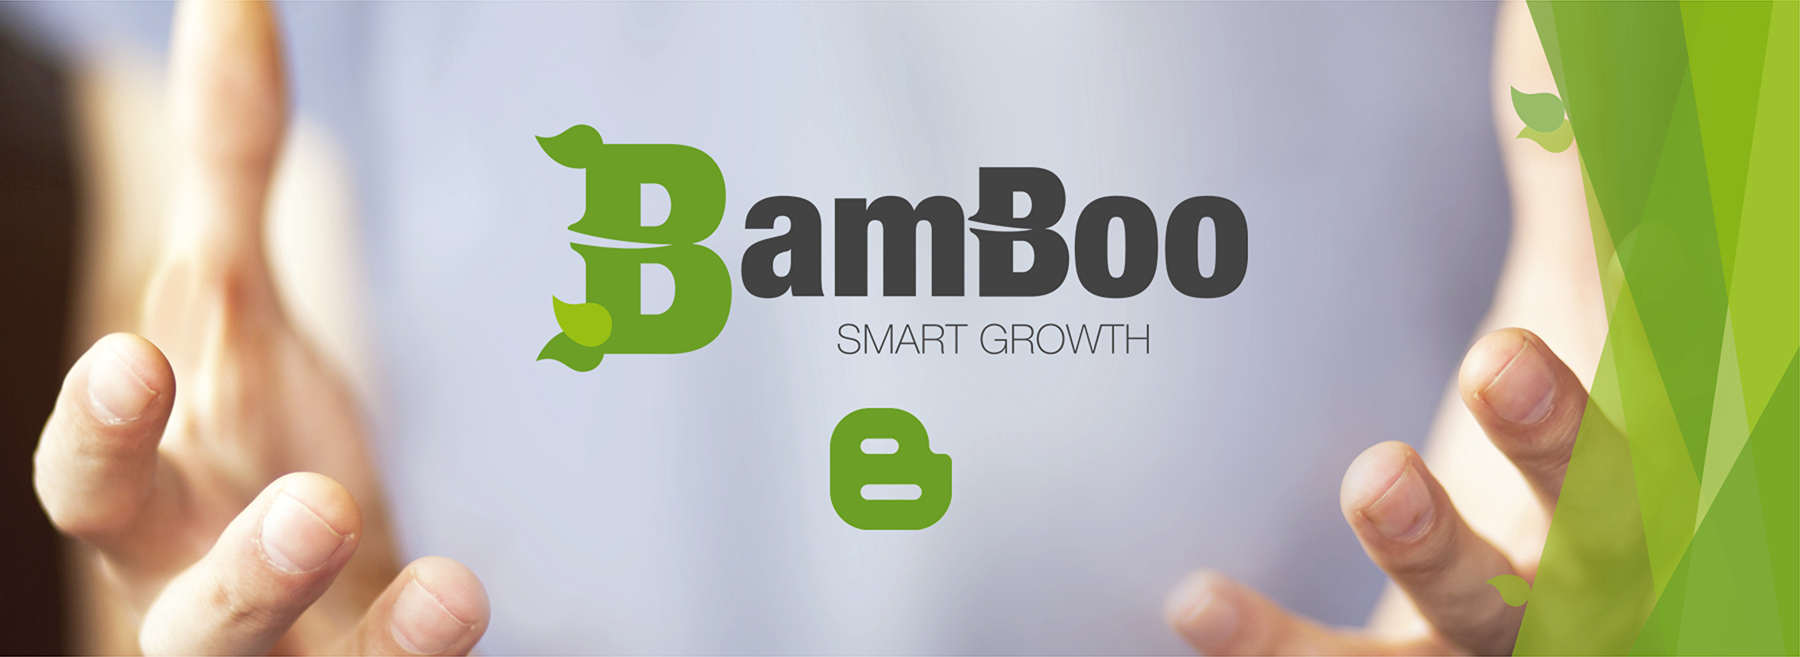 BamBoo Smart Growth Blog